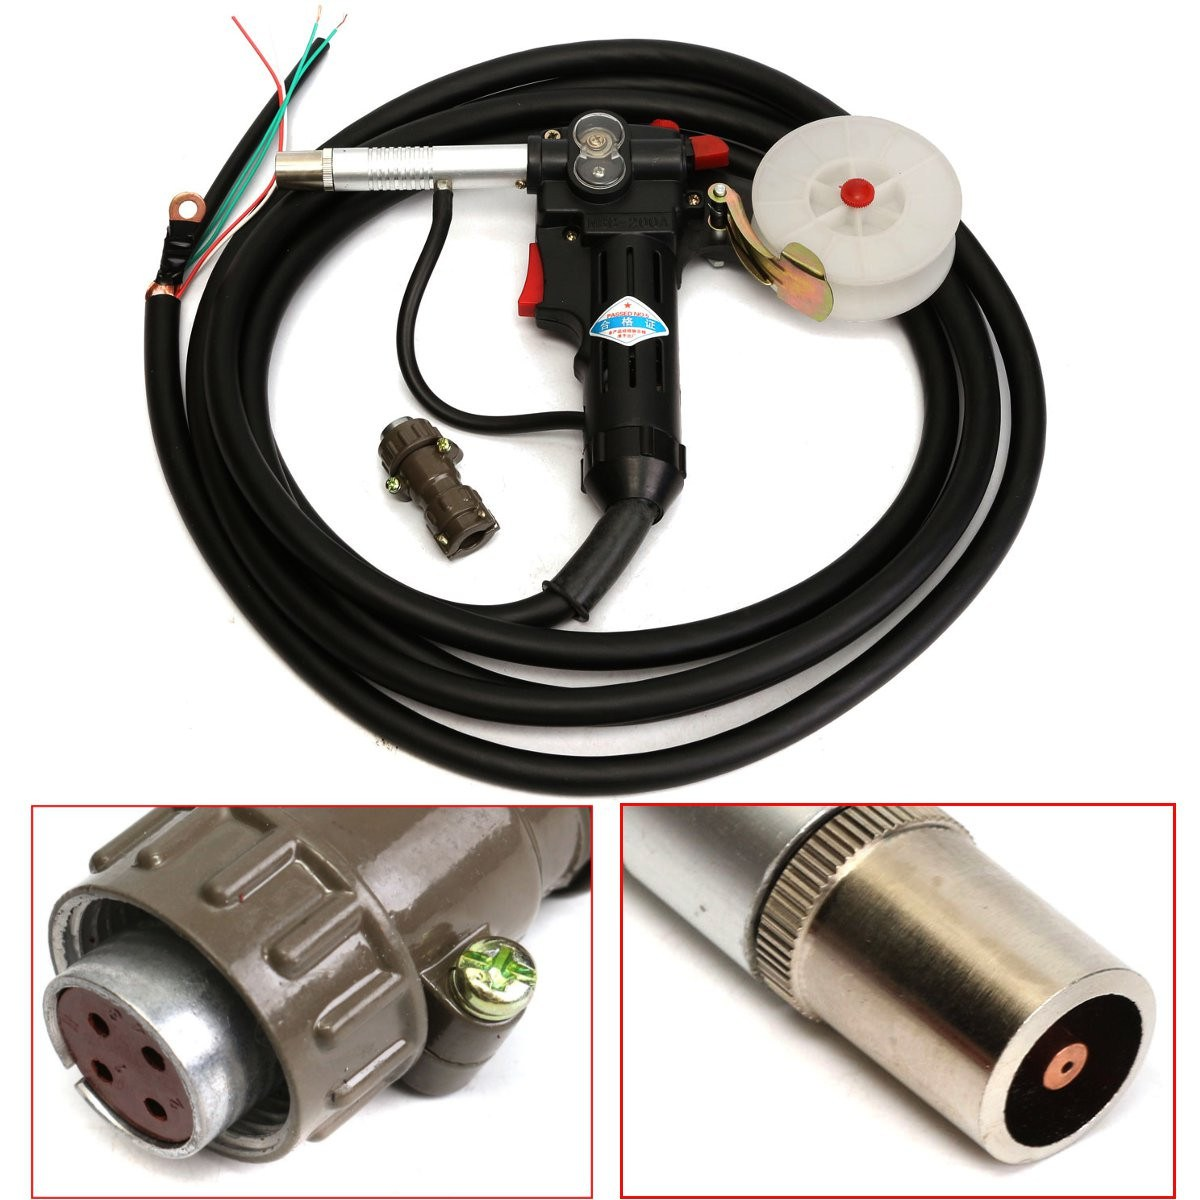 High Quality MIG Spool-Gun NBC-200A Gas Shielded Welding-Gun with 5M Lead Push Pull Feeder Aluminum Torch цена